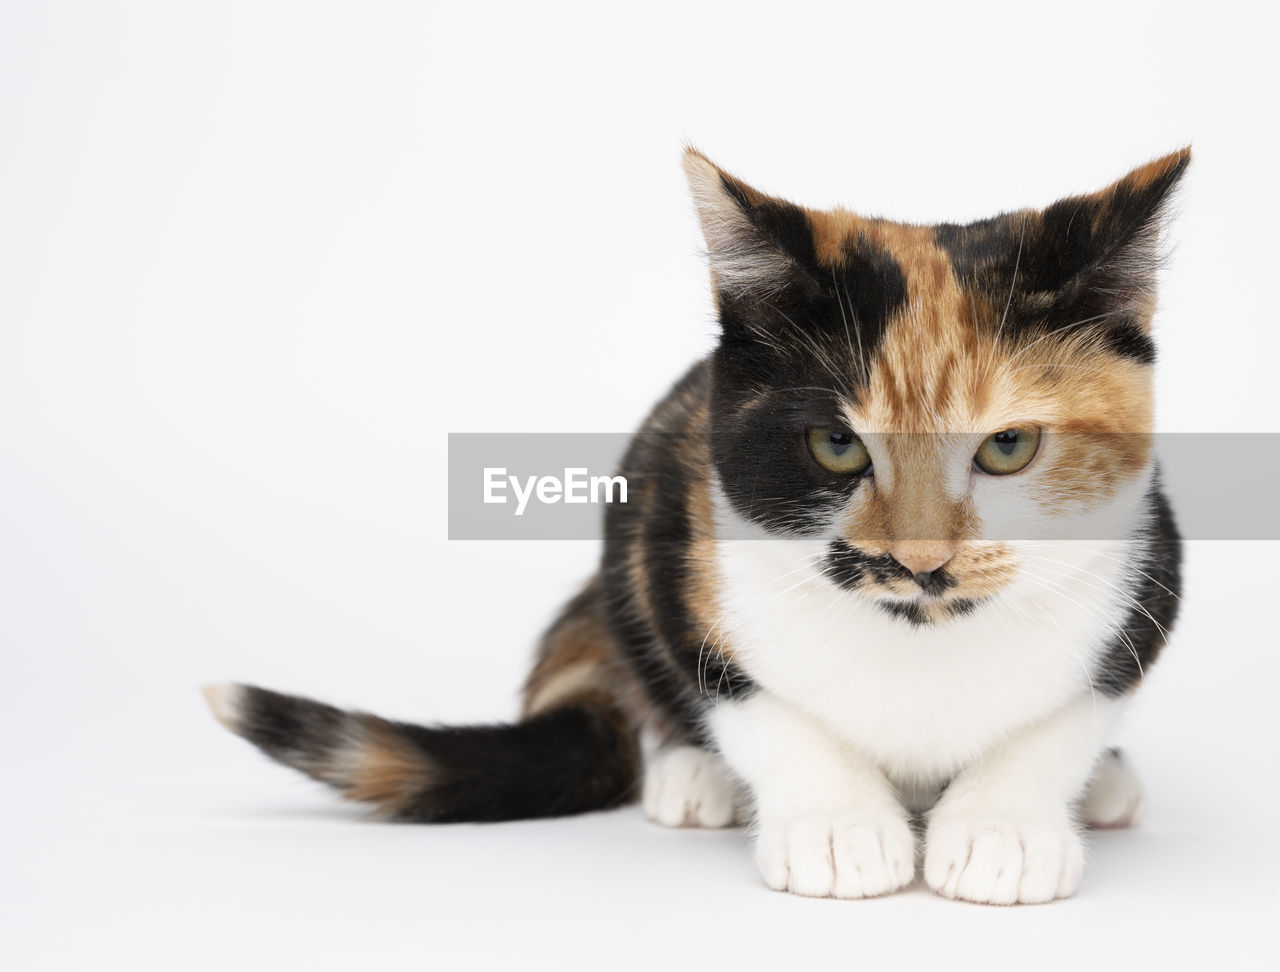 cat, pets, domestic cat, studio shot, domestic, feline, domestic animals, white background, mammal, animal, animal themes, indoors, vertebrate, one animal, copy space, portrait, no people, cut out, sitting, looking at camera, whisker